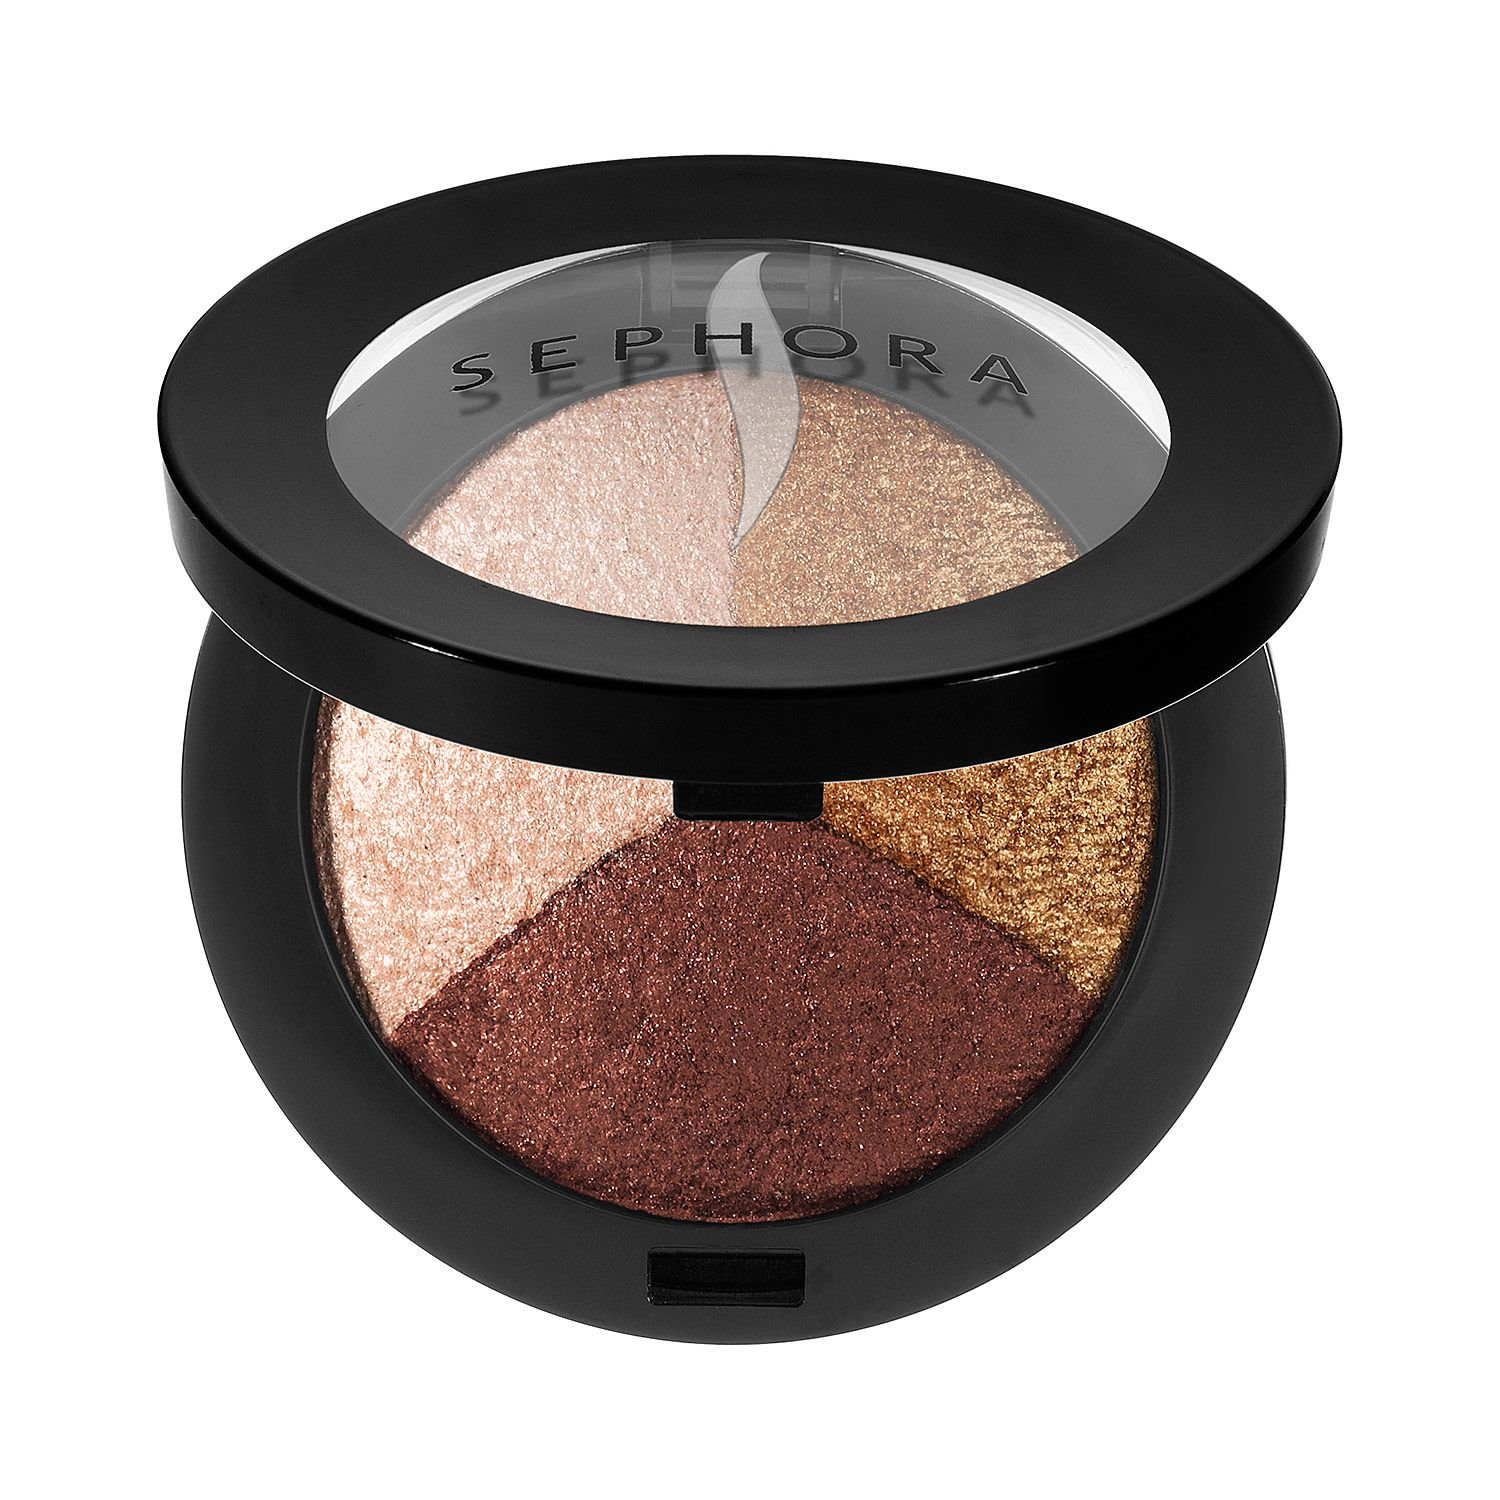 What it is:A collection of eye shadow trios that effortlessly blend for the perfect look, day to night.   What it does: These expertly coordinated color trios make creating multiple looks effortless and stunning. The ultra-light, micronized pigment